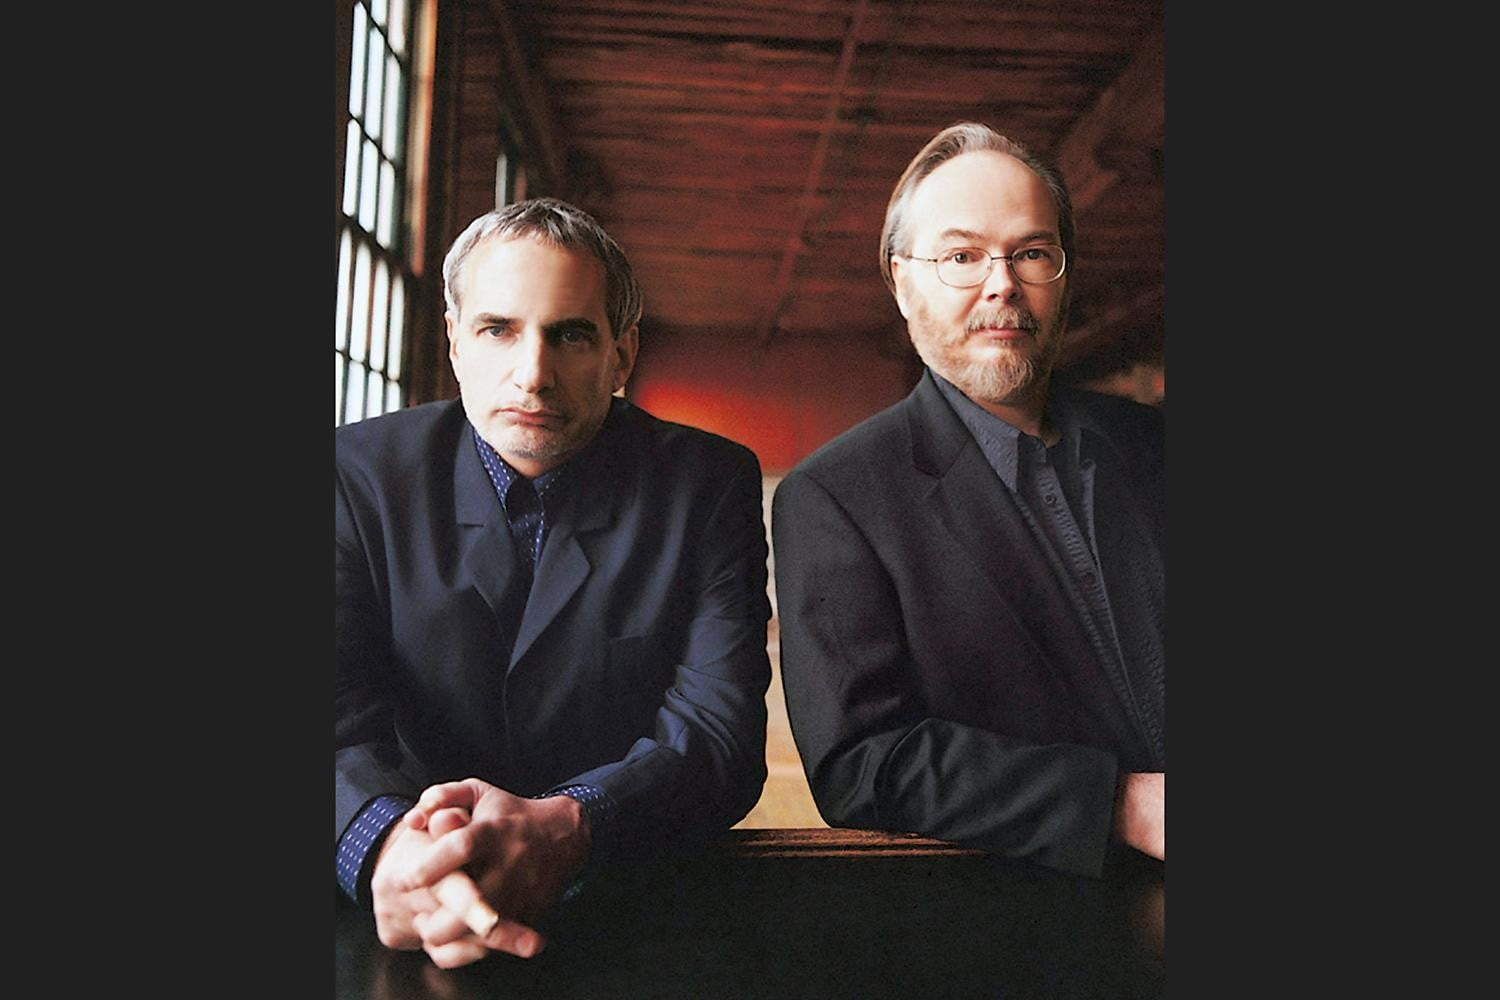 DONALD-FAGEN-&-WALTER-BECKER-_-LEANING-_-PHOTO-BY-DANNY-CLINCH